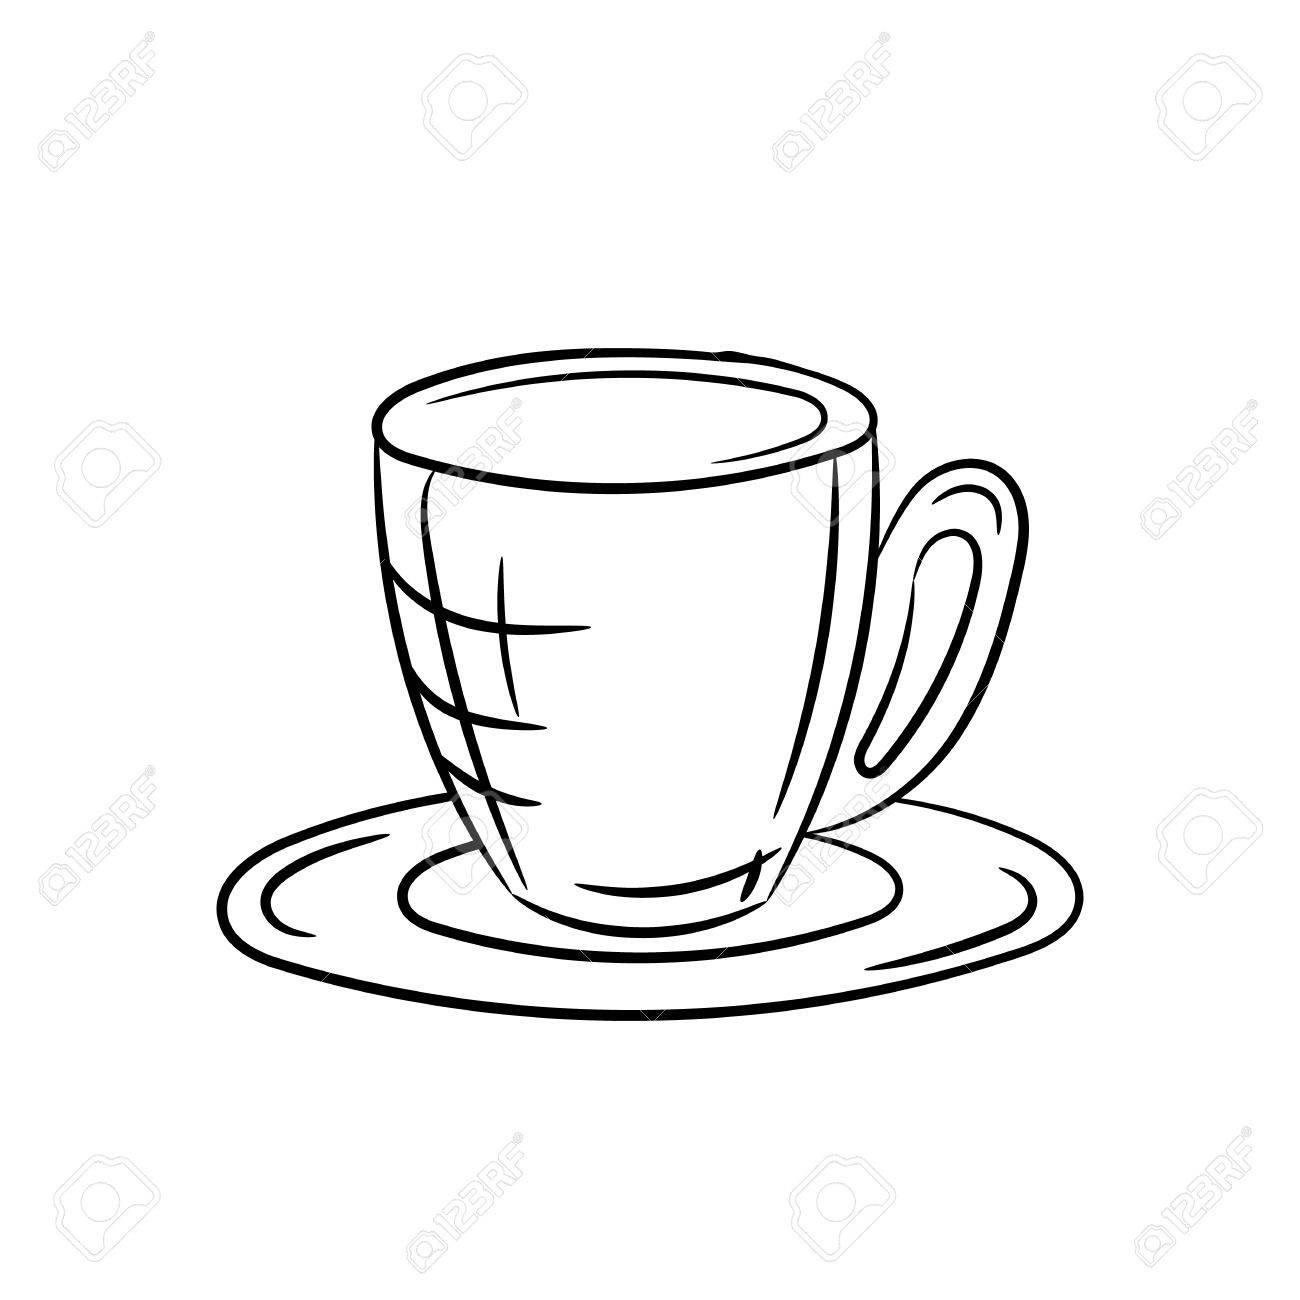 Hand Draw Cup And Saucer On A White Background Royalty Free Cliparts Vectors And Stock Illustration Image 56023099